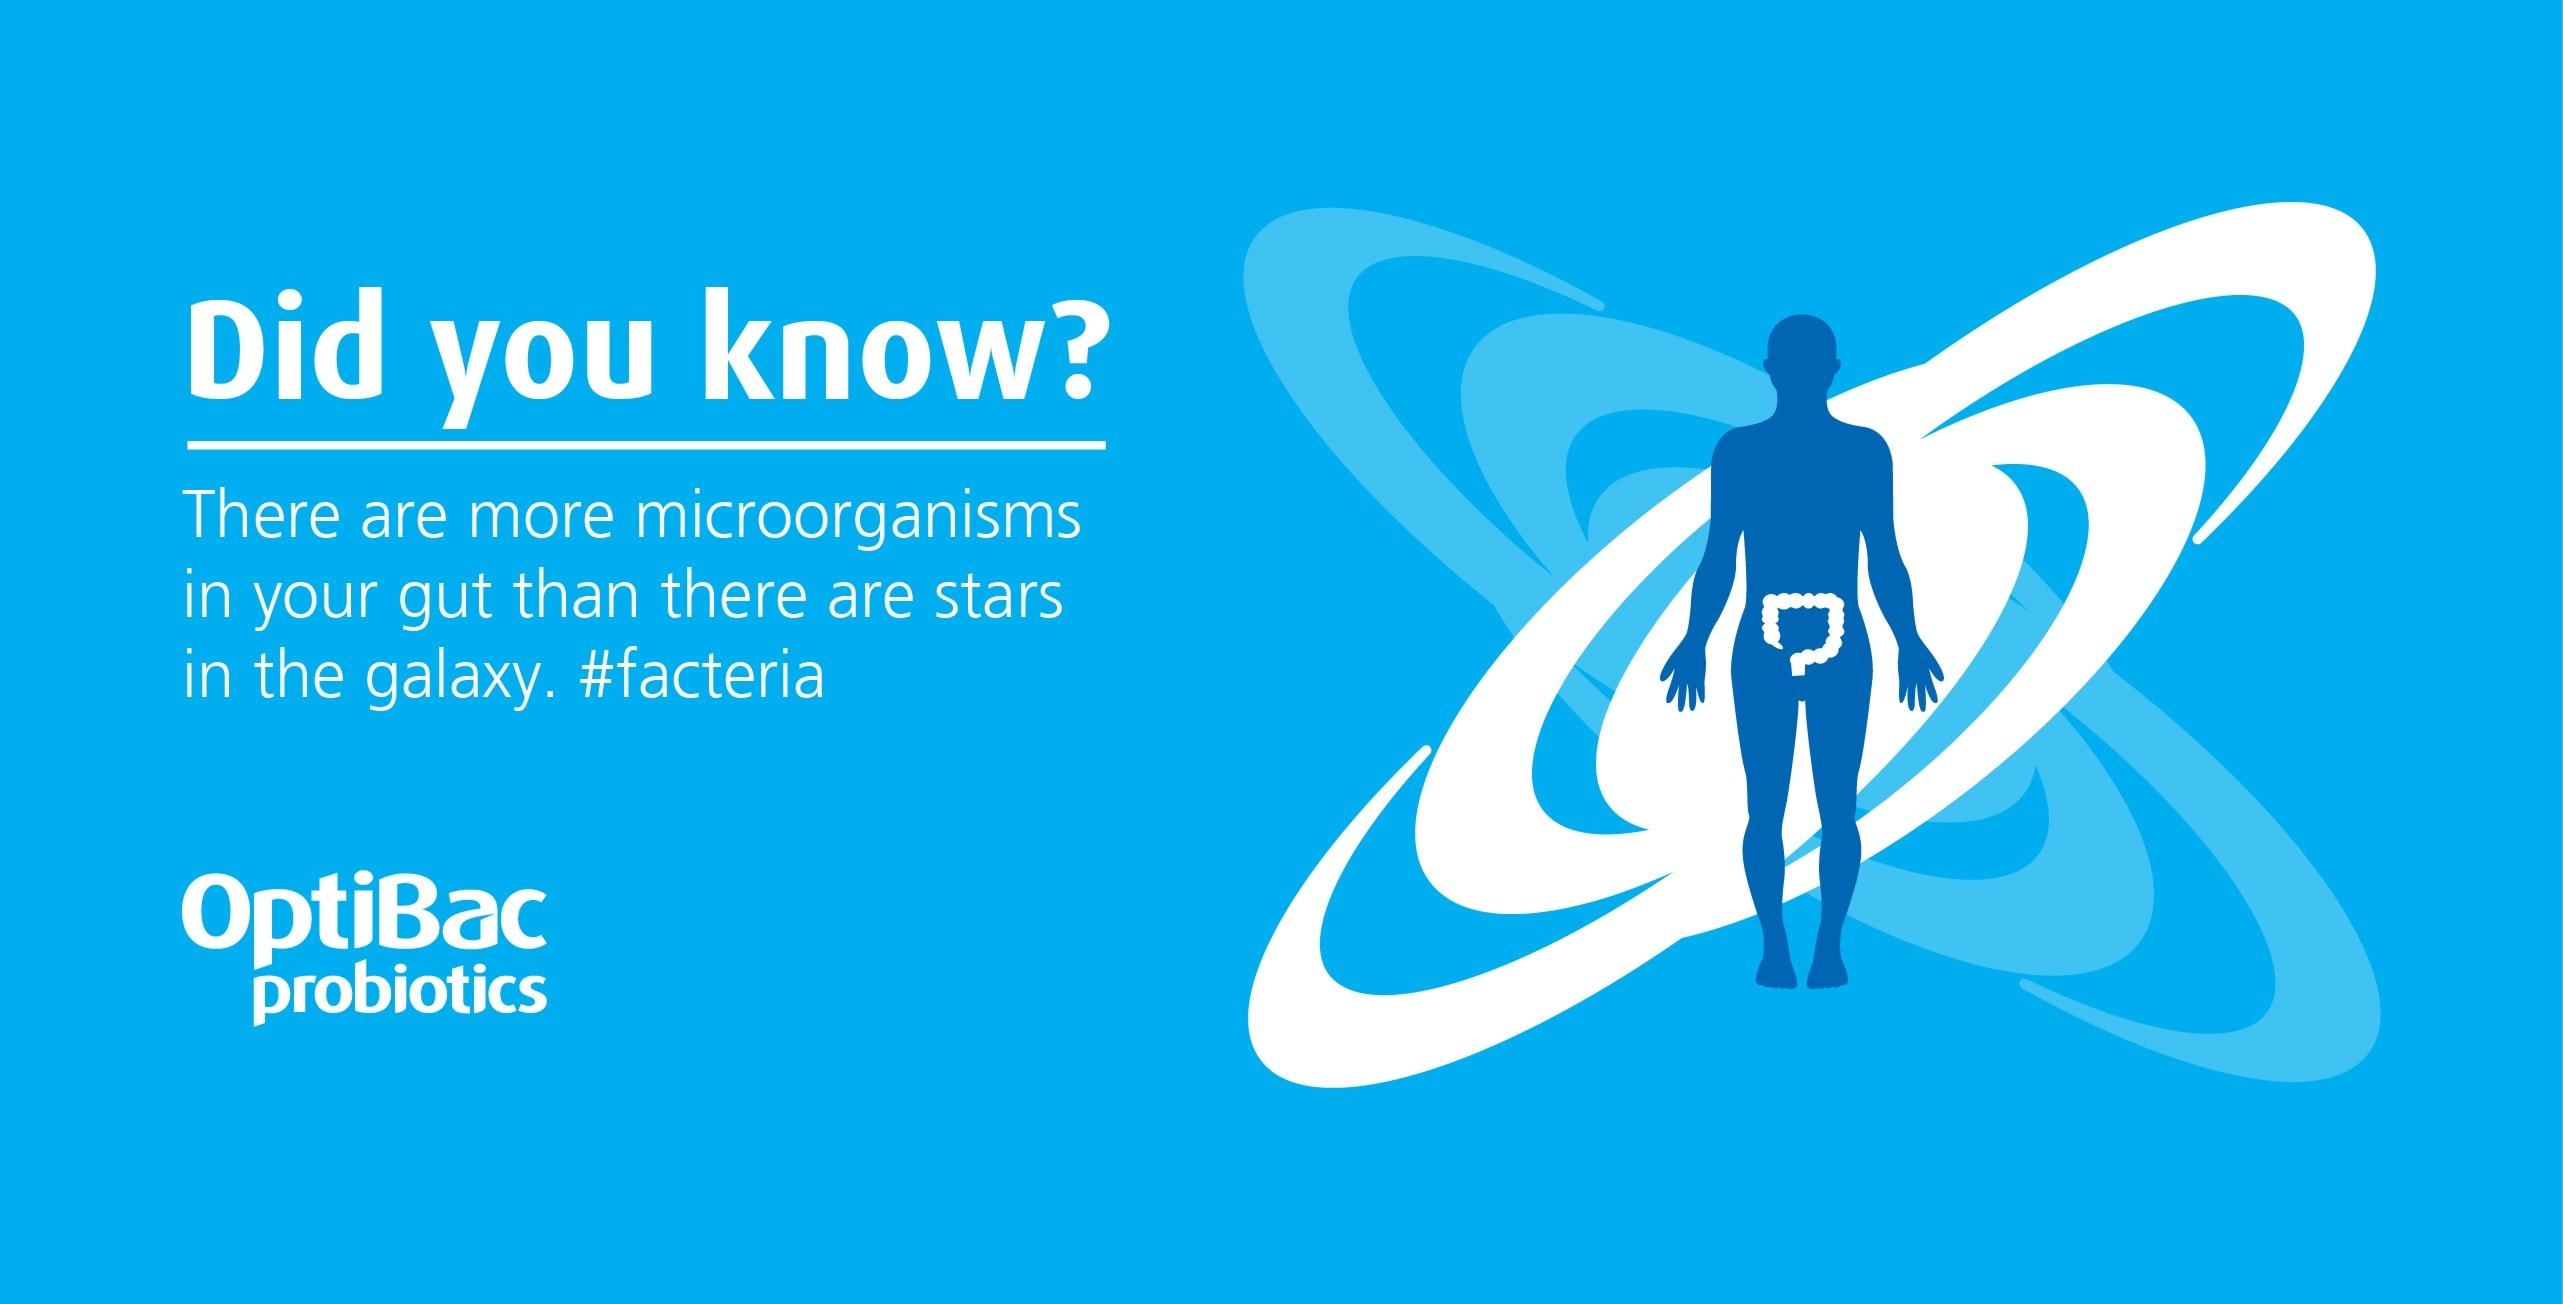 Fact about bacteria and the galaxy